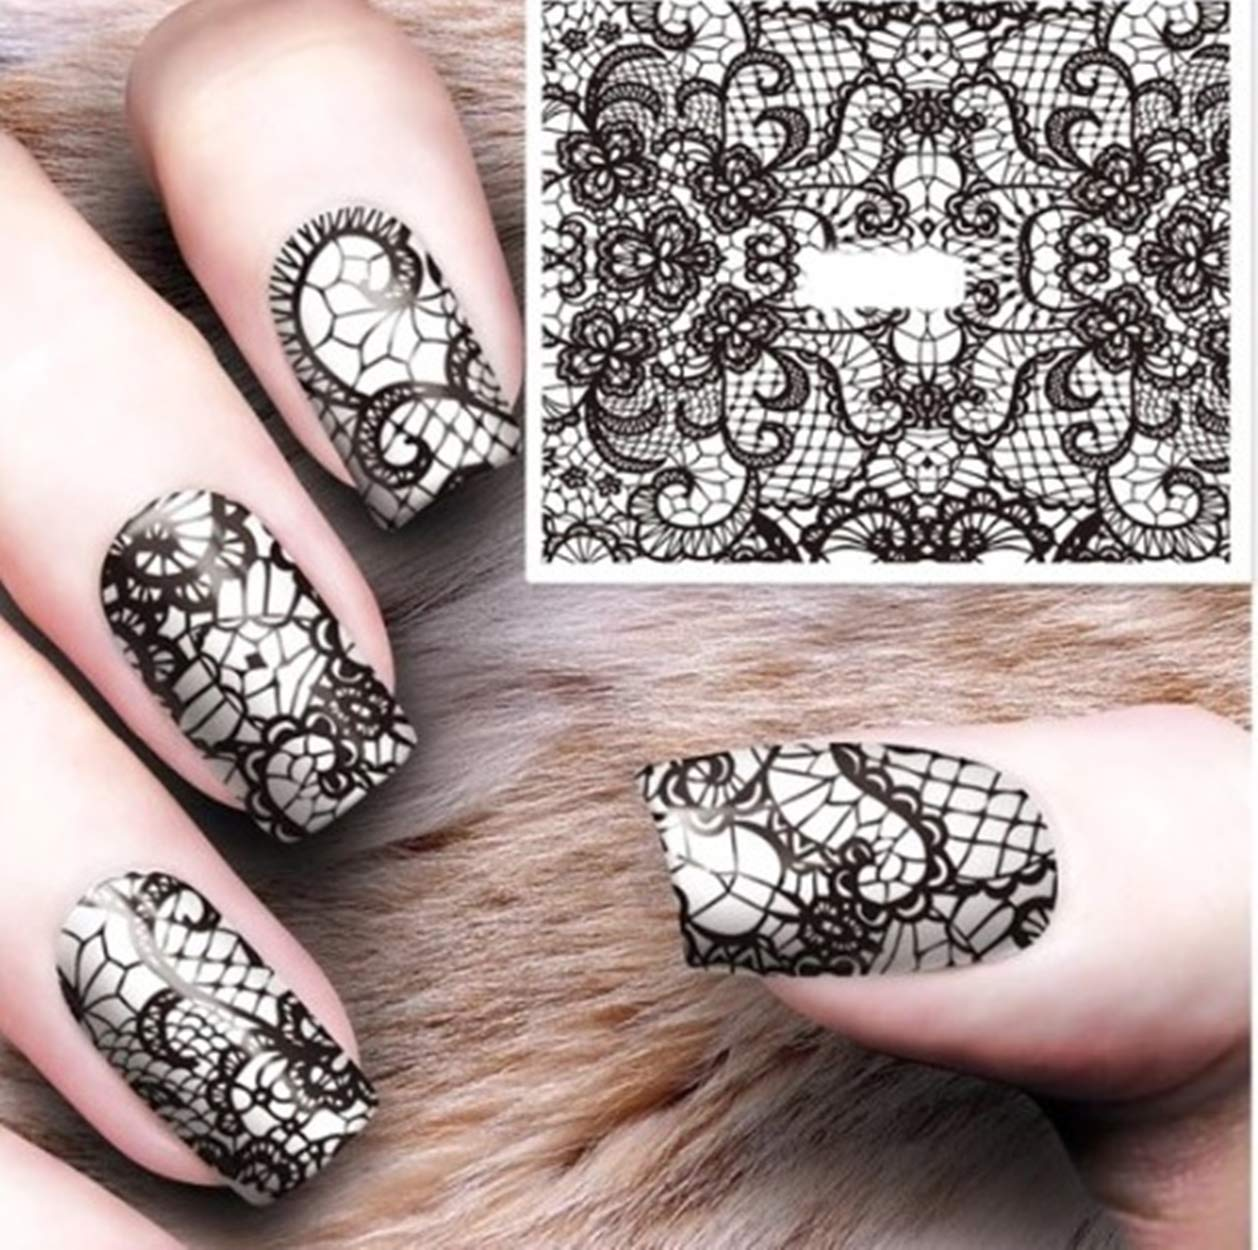 Amazon Com 1 Pcs Lace Tattoos Nails Art Sticker Water Transfer Decals Nail Stickers Girl Princess Acrylic Designs Cool Popular Gel Polish Stencil Adhesive Halloween Tool Tips Beauty